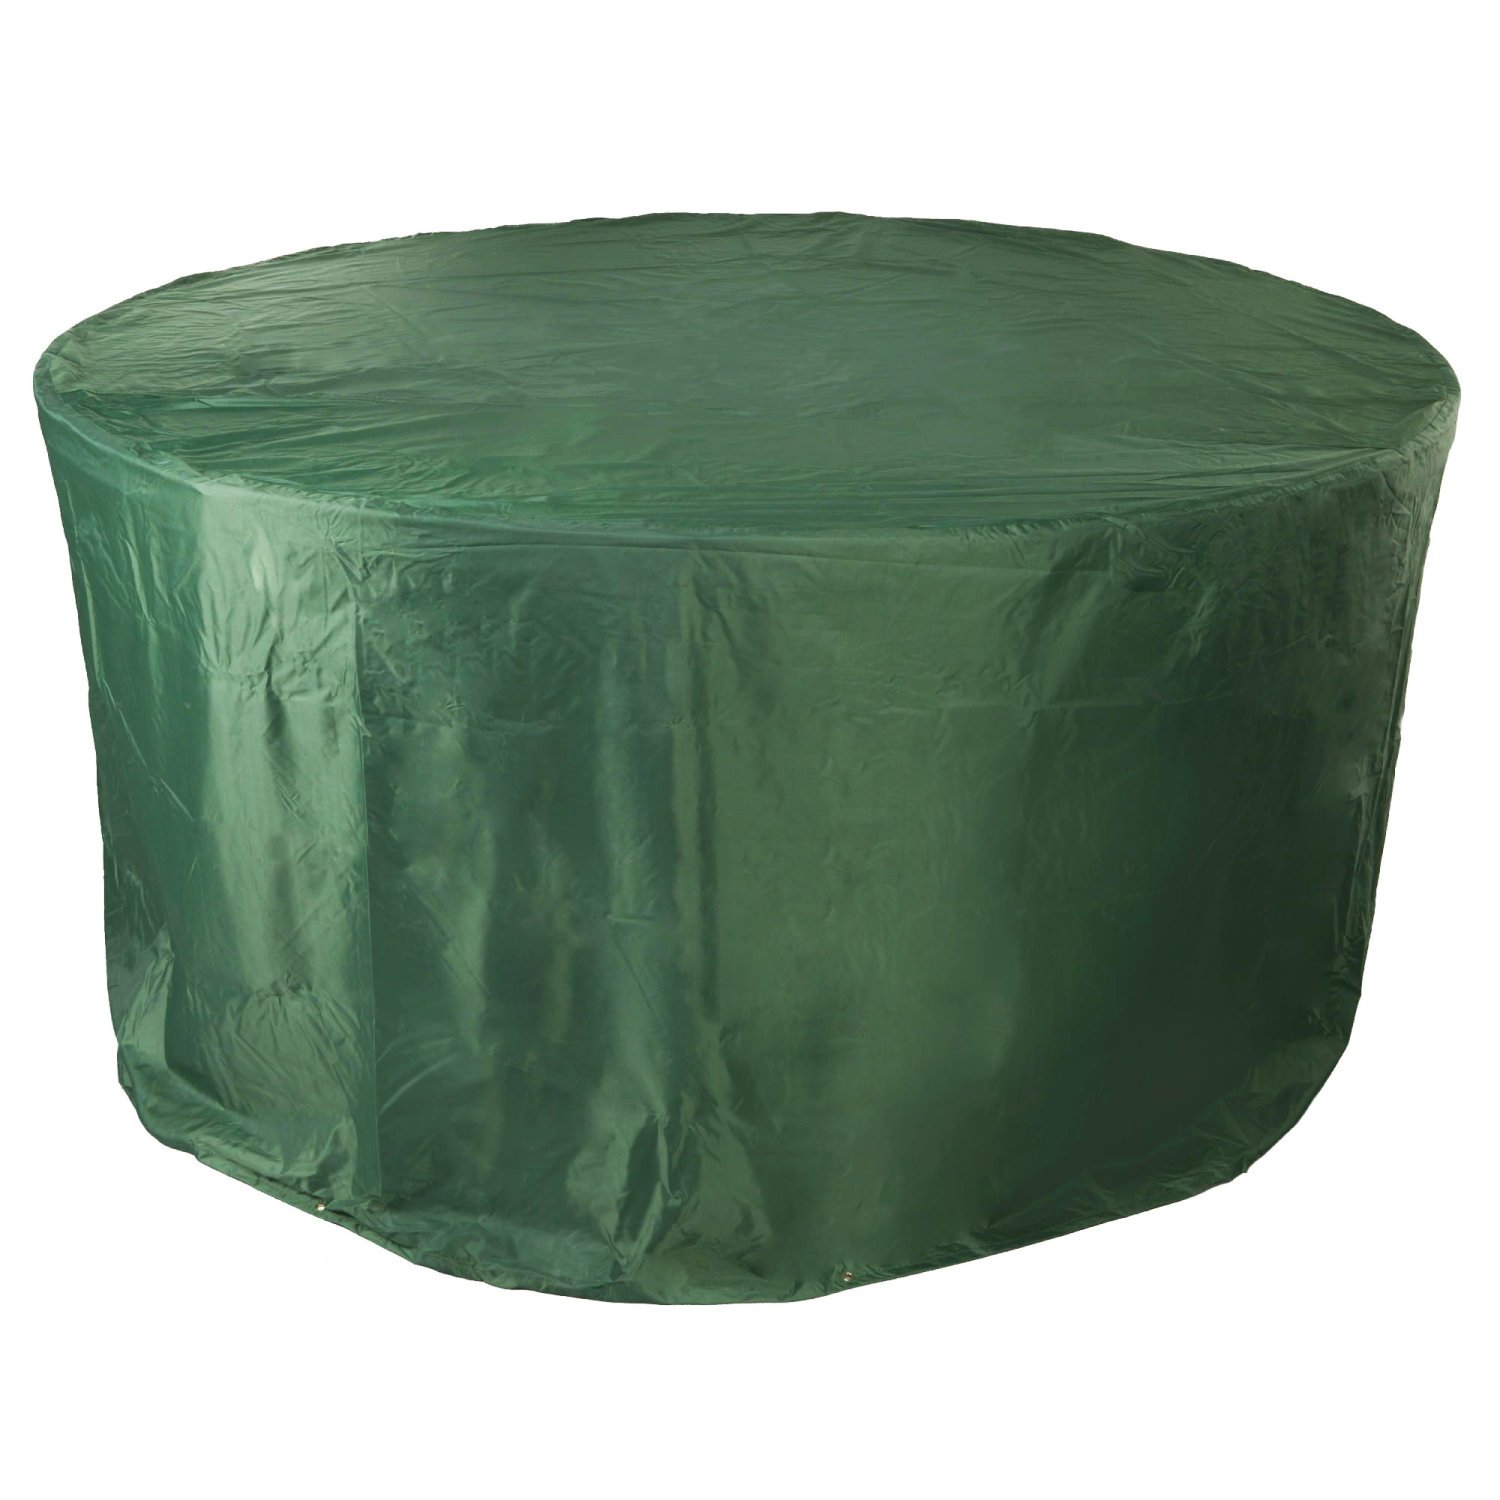 new tesco garden patio furniture table cover round 124cm With garden furniture covers tesco